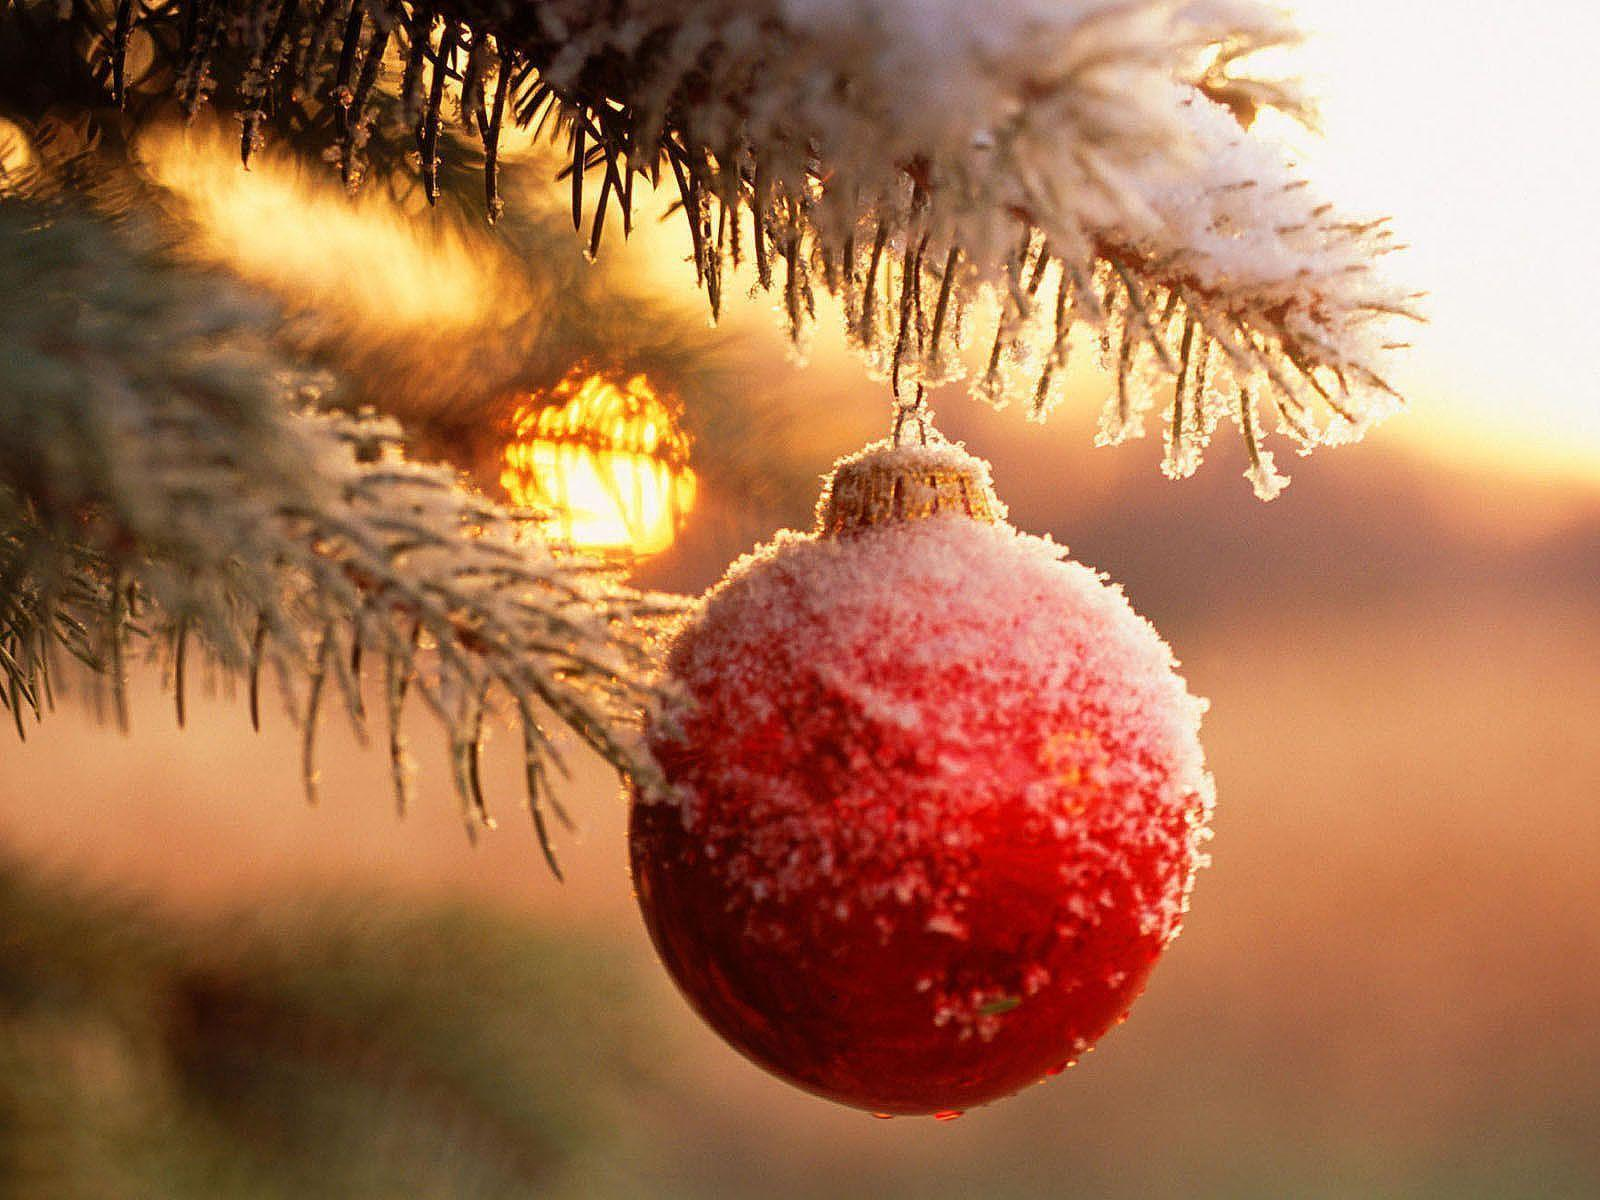 Christmas Ornaments Wallpapers | coolstyle wallpapers.